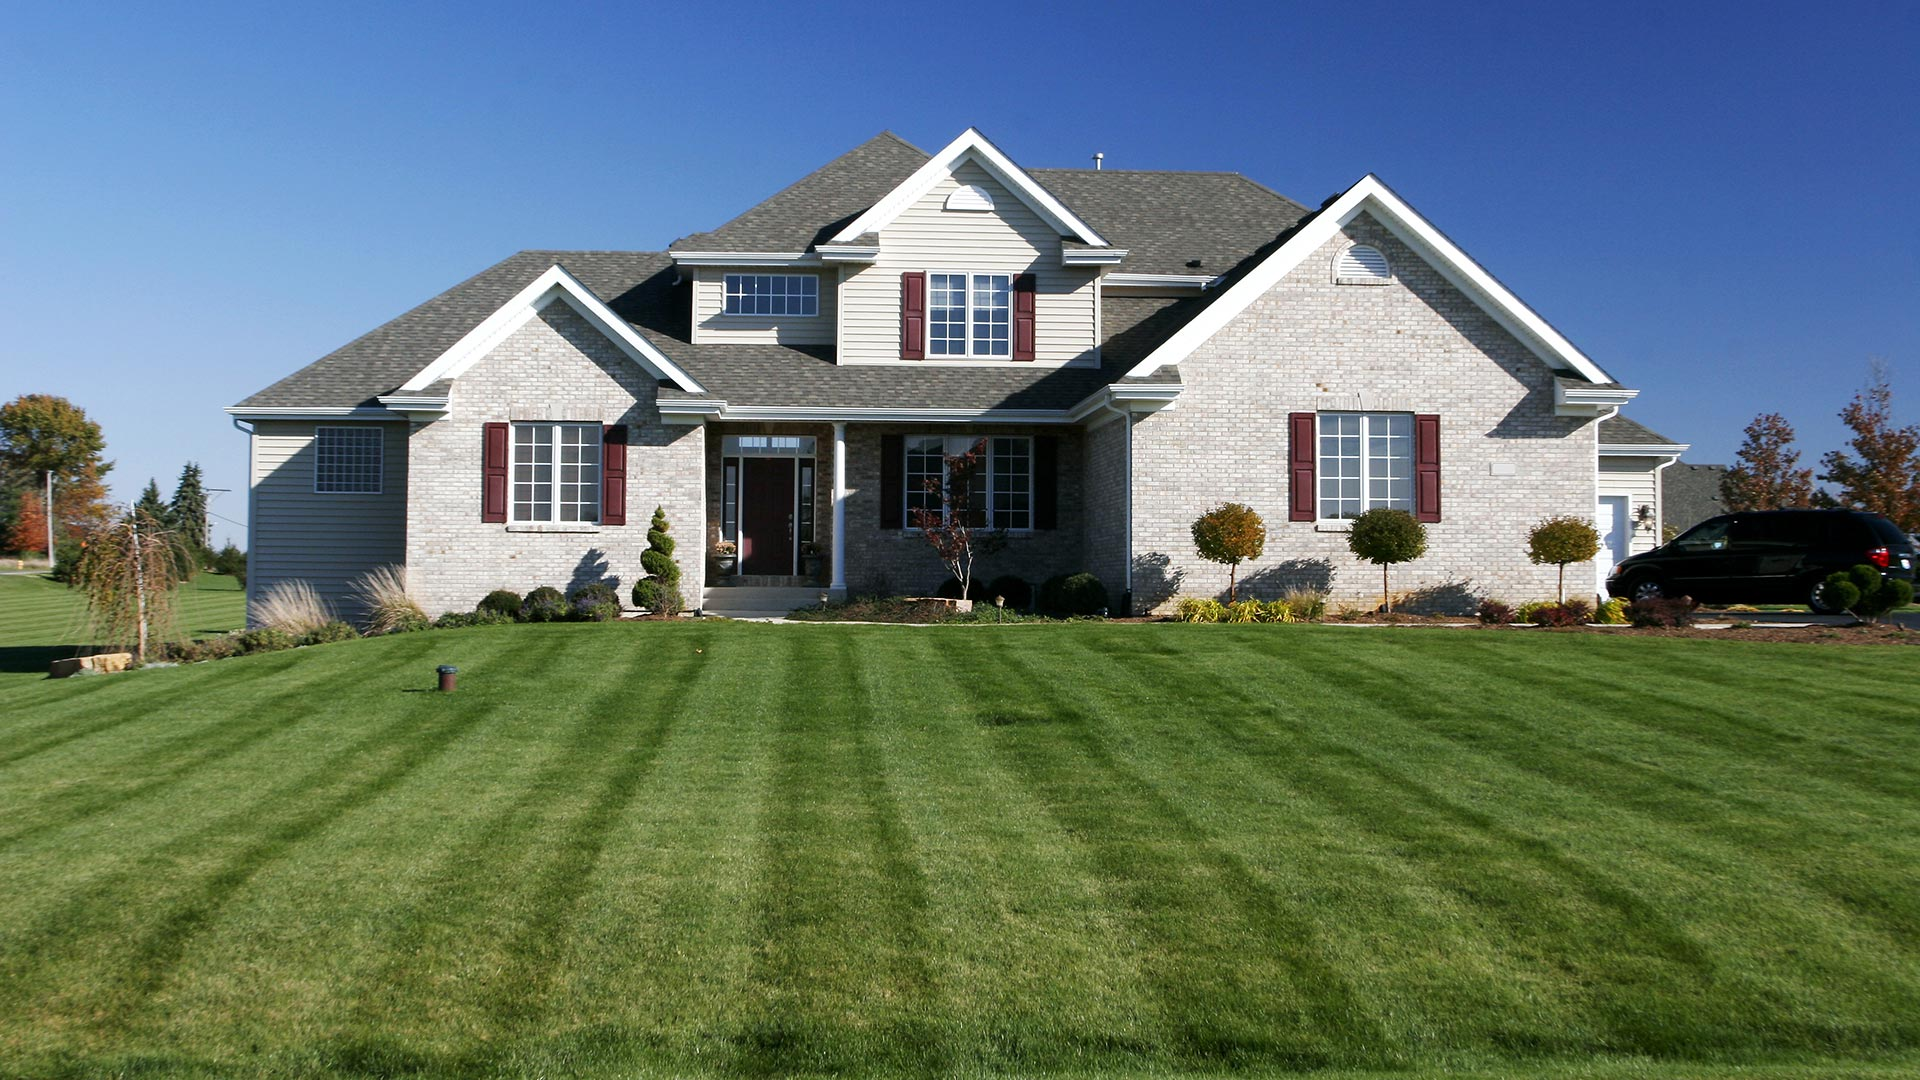 Residential lawn with regular lawn mowing services in Sartell, MN.